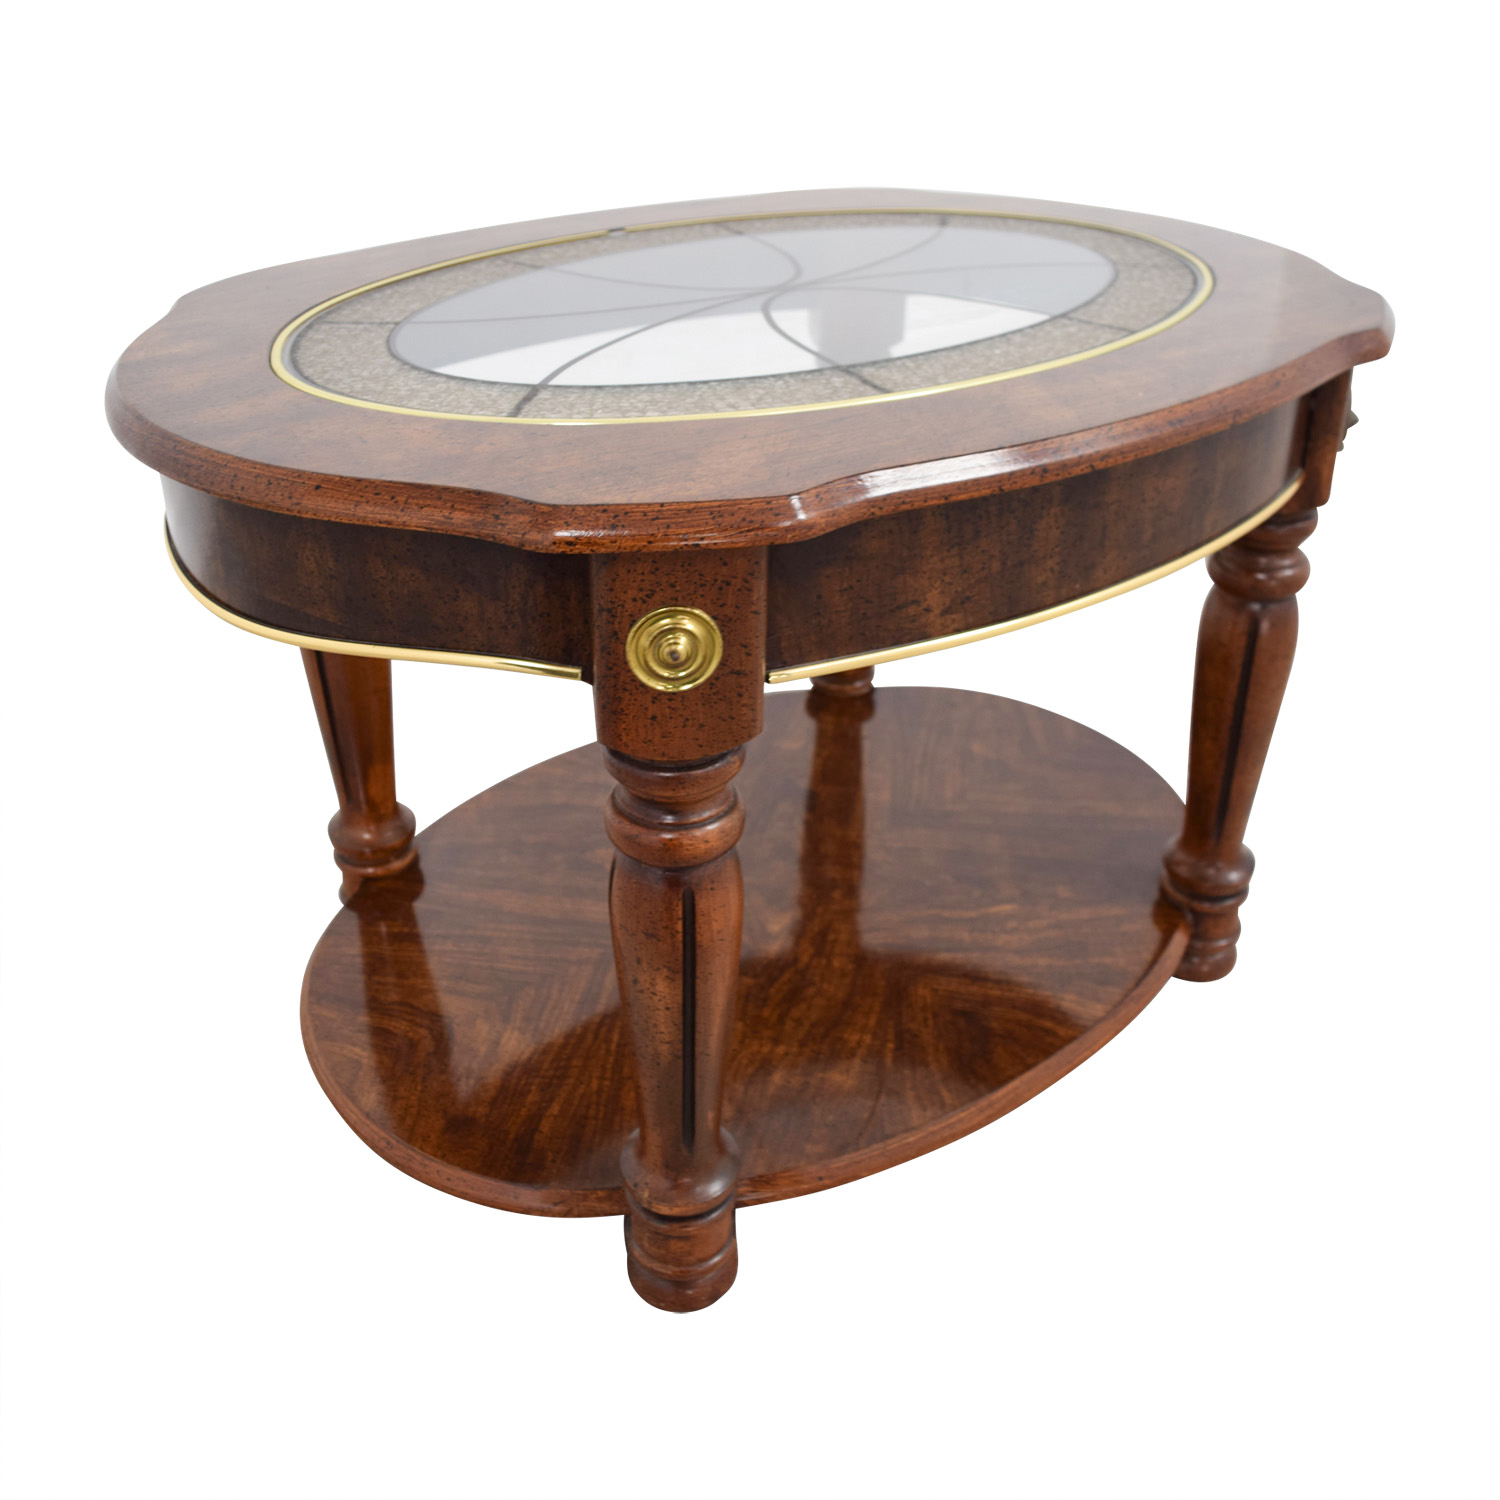 85 Off Vintage Small Round Coffee Table Tables